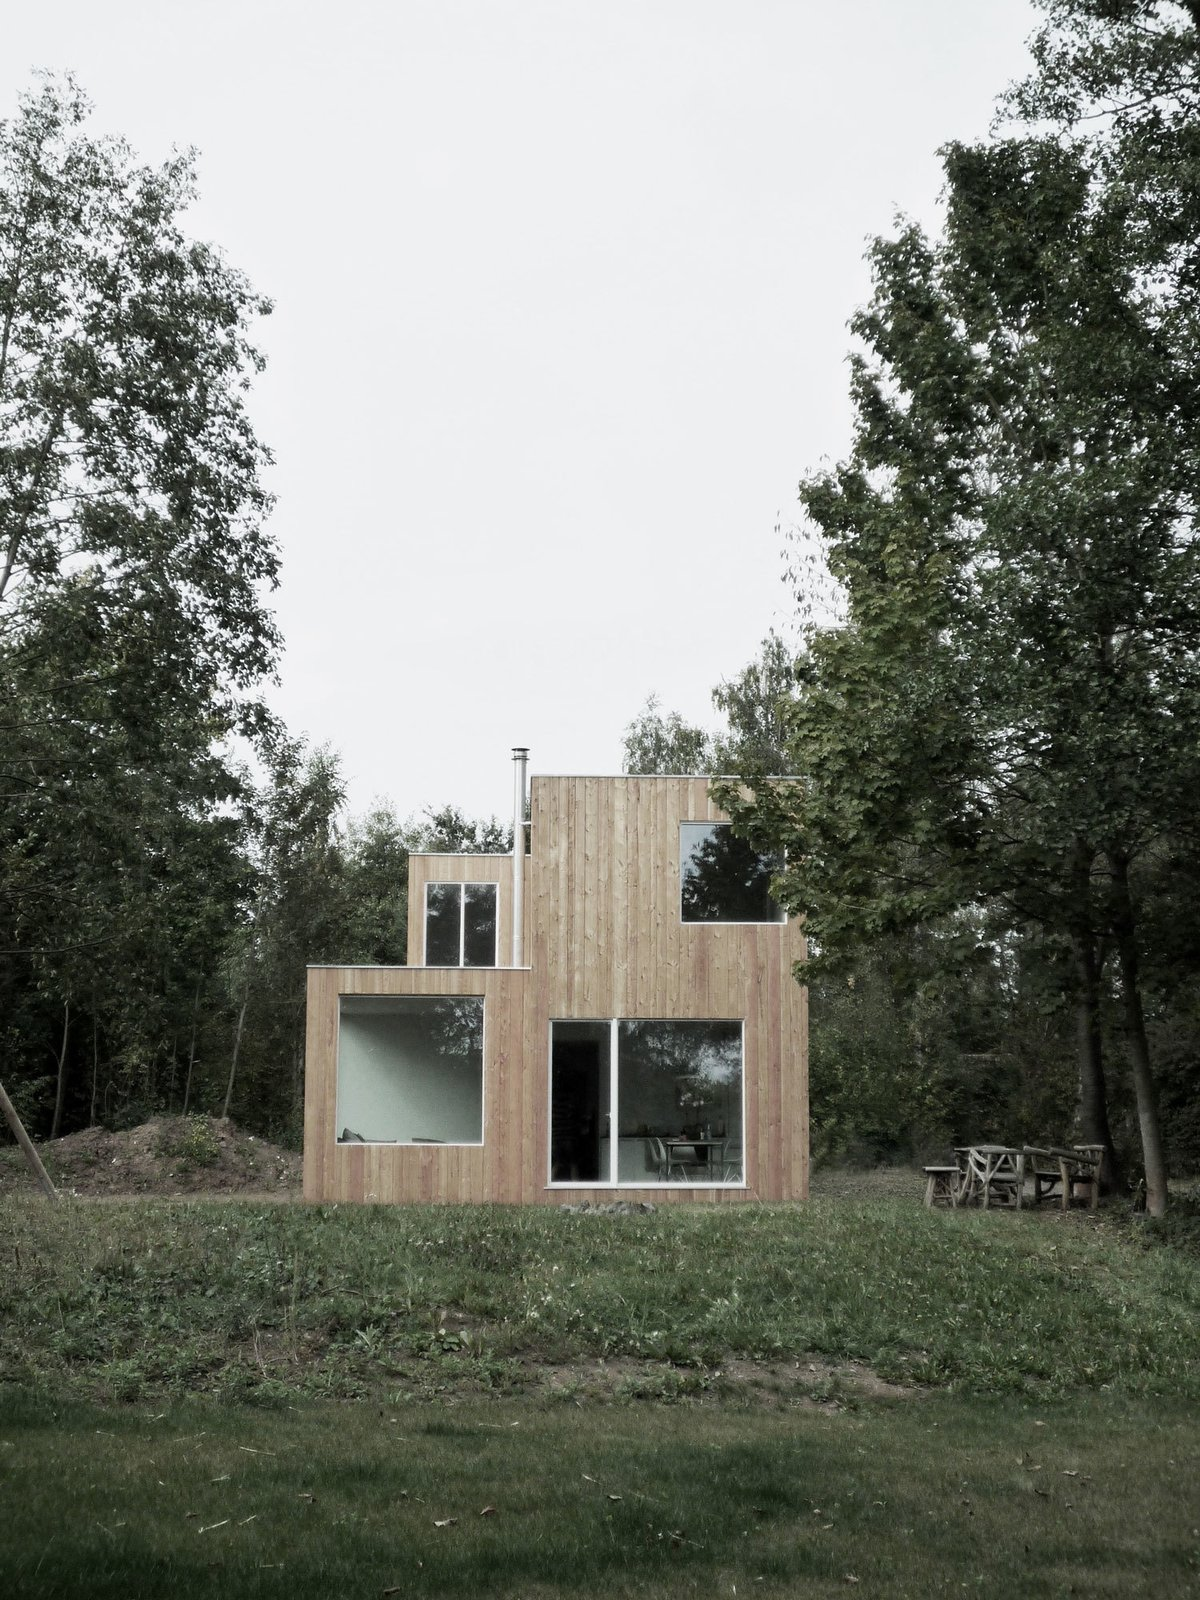 In Hungen, a lakeside town, regulations require homes to occupy a footprint of no more than 538 square feet, and be only one story tall. NKBAK worked around these limitations by designing a modern home with only a partial second story.